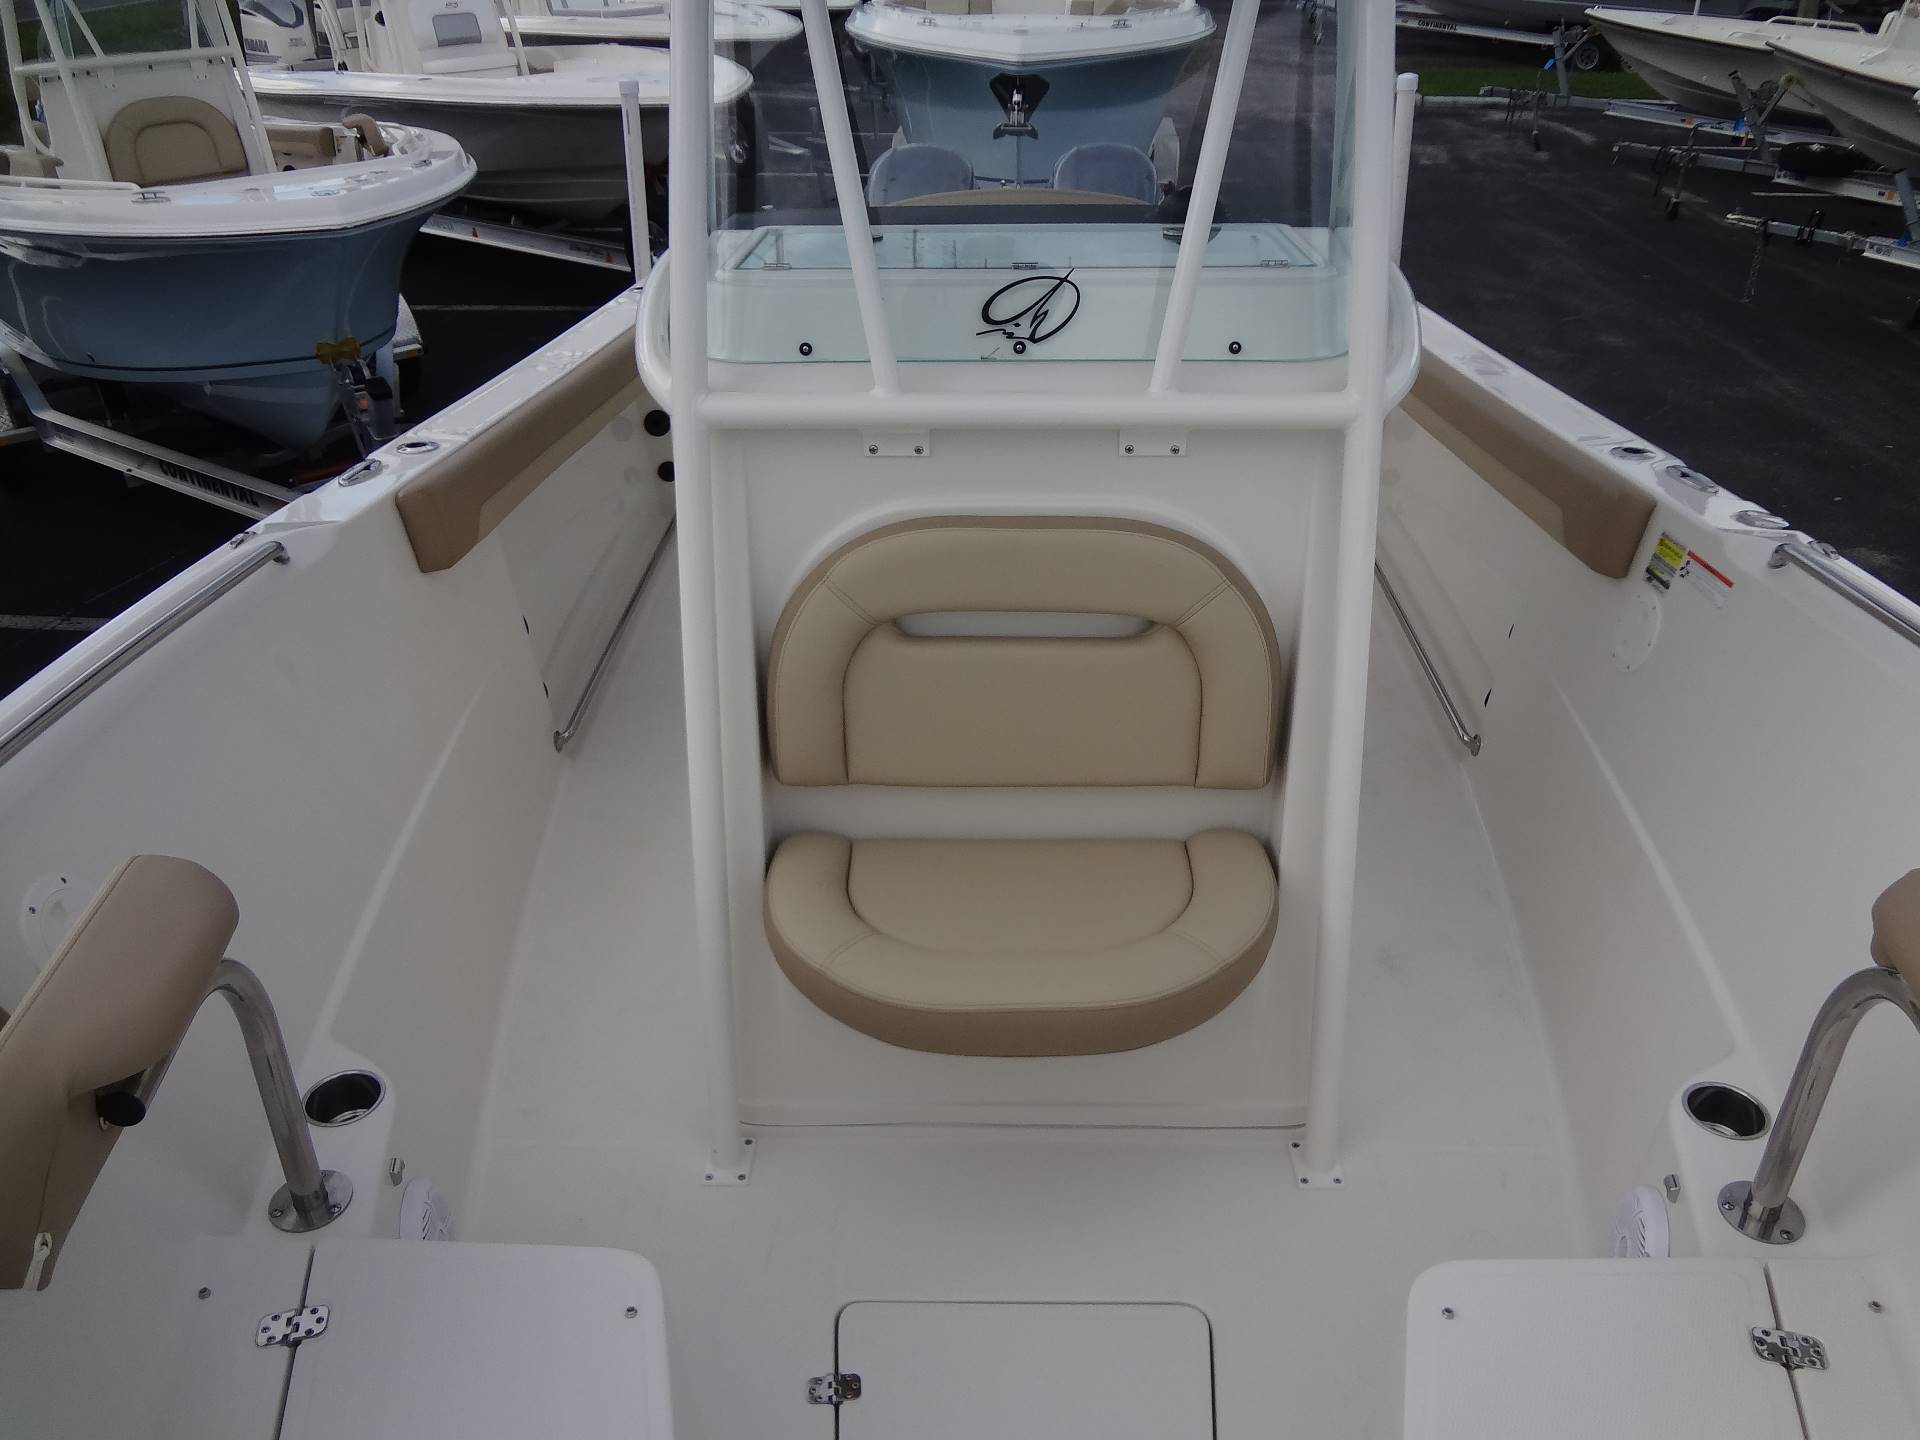 2020 Sailfish 242 CC in Holiday, Florida - Photo 45